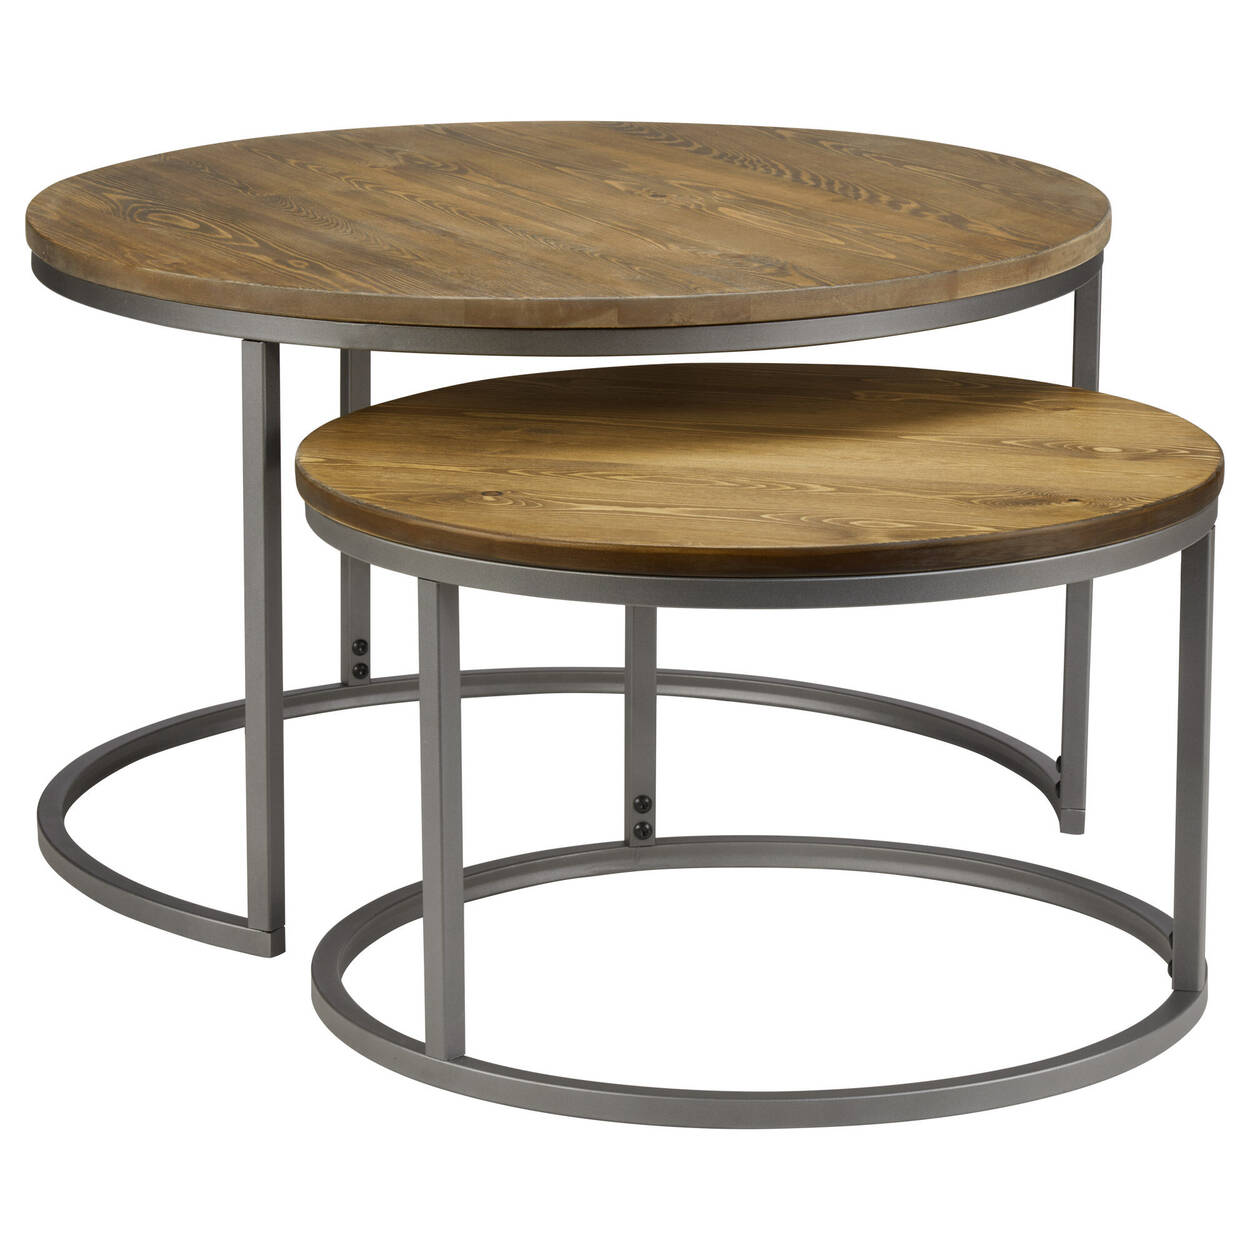 Small Coffee Tables B M: Set Of 2 Pine Wood Coffee Tables With Metal Legs